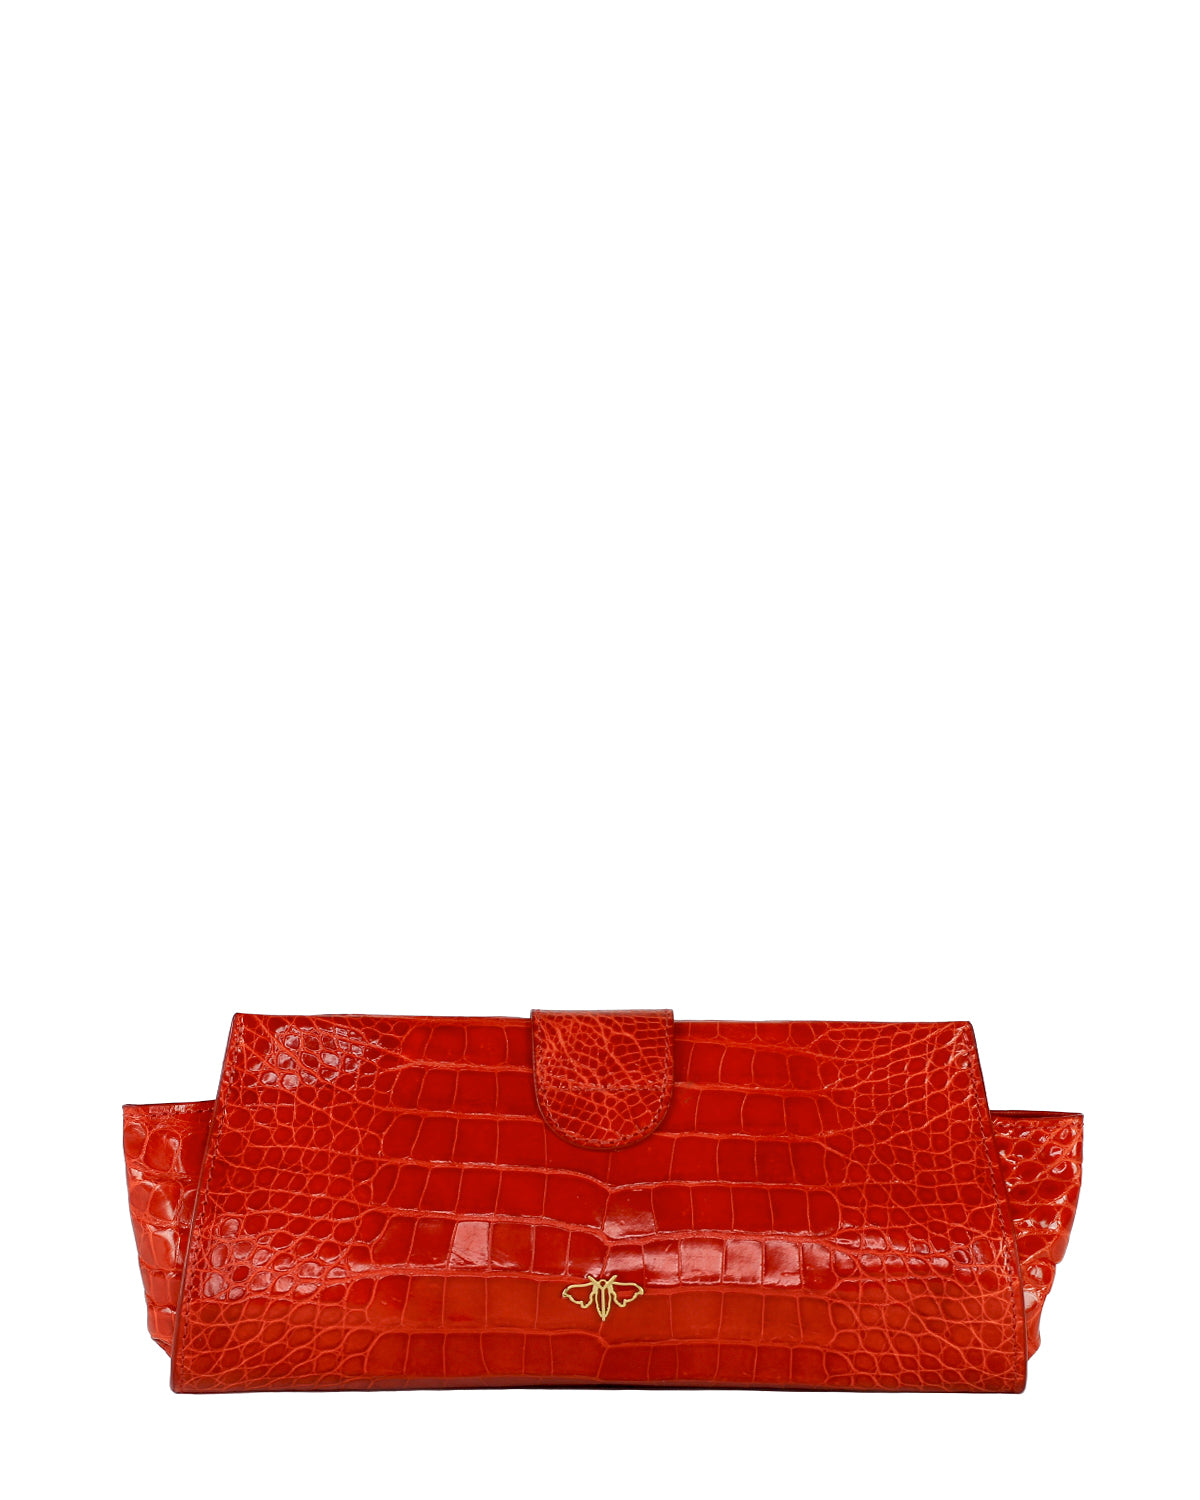 YB Red Croco Alligator Evening Clutch Back View with Moth Logo